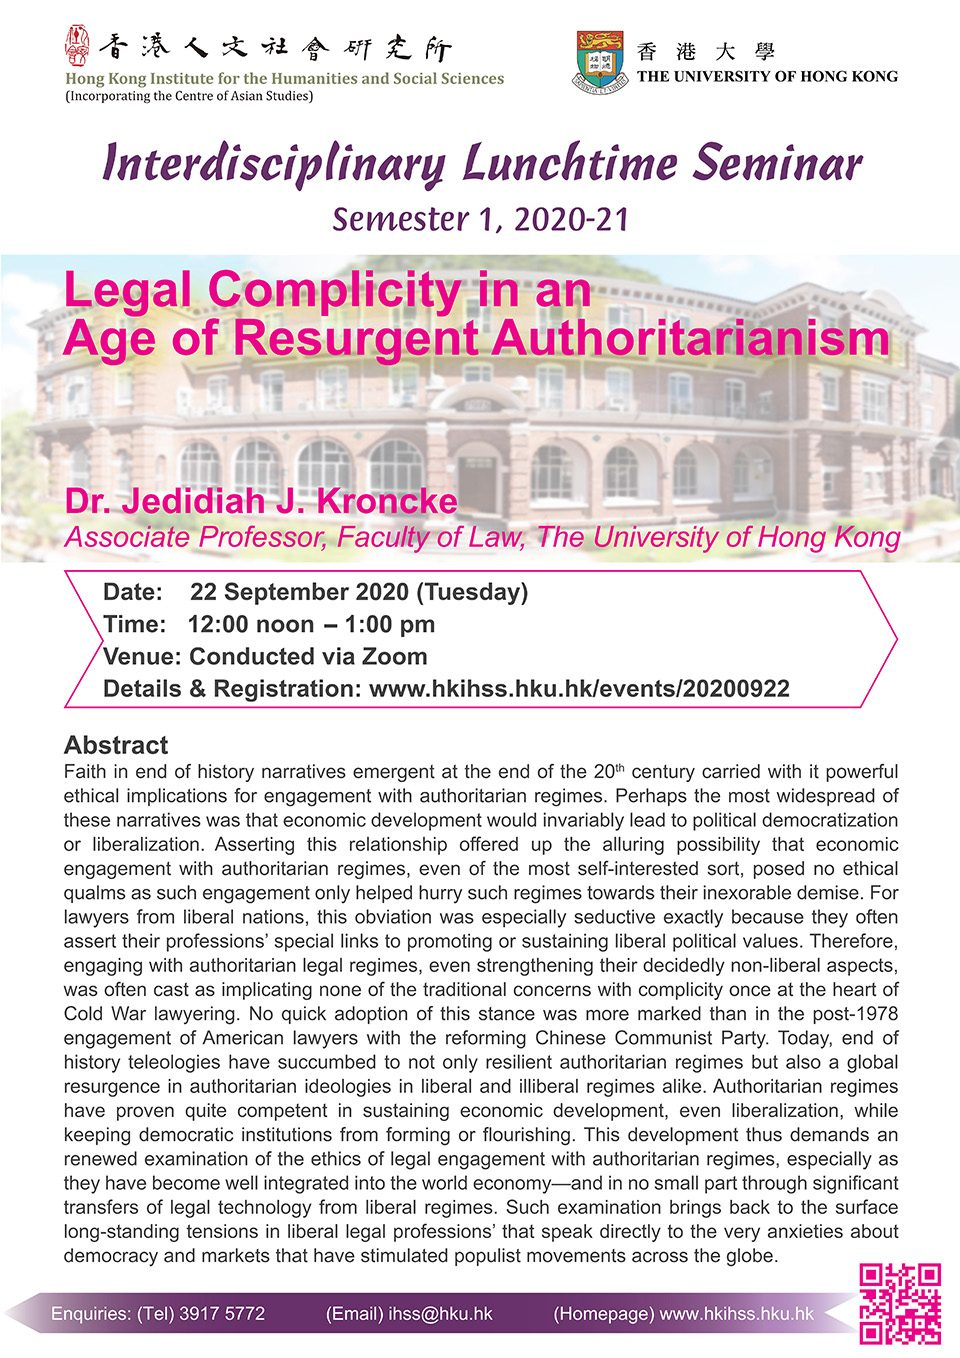 """Interdisciplinary Lunchtime Seminar on """"Legal Complicity in an Age of Resurgent Authoritarianism"""" by Dr. Jedidiah Kroncke (September 22, 2020)"""